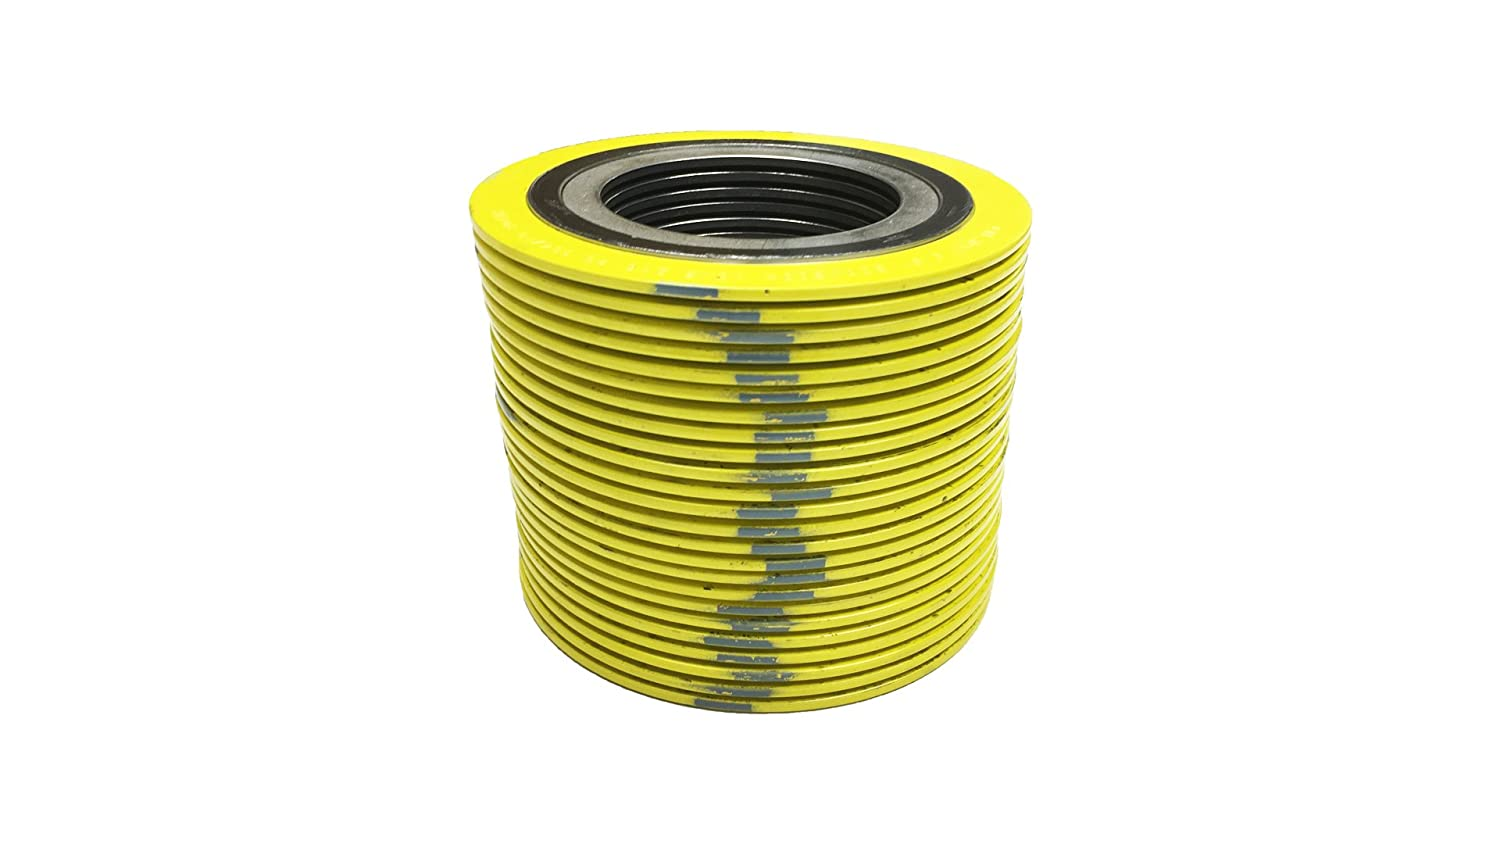 Pack of 24 of NJ Yellow with Grey Stripe Sterling Seal 9000IR1500304GR1500x24 304 Stainless Steel Spiral Wound Gasket with Inner Ring and Flexible Graphite Filler for 1.5 Pipe Pressure Class 1500# Supplied by Sur-Seal Inc